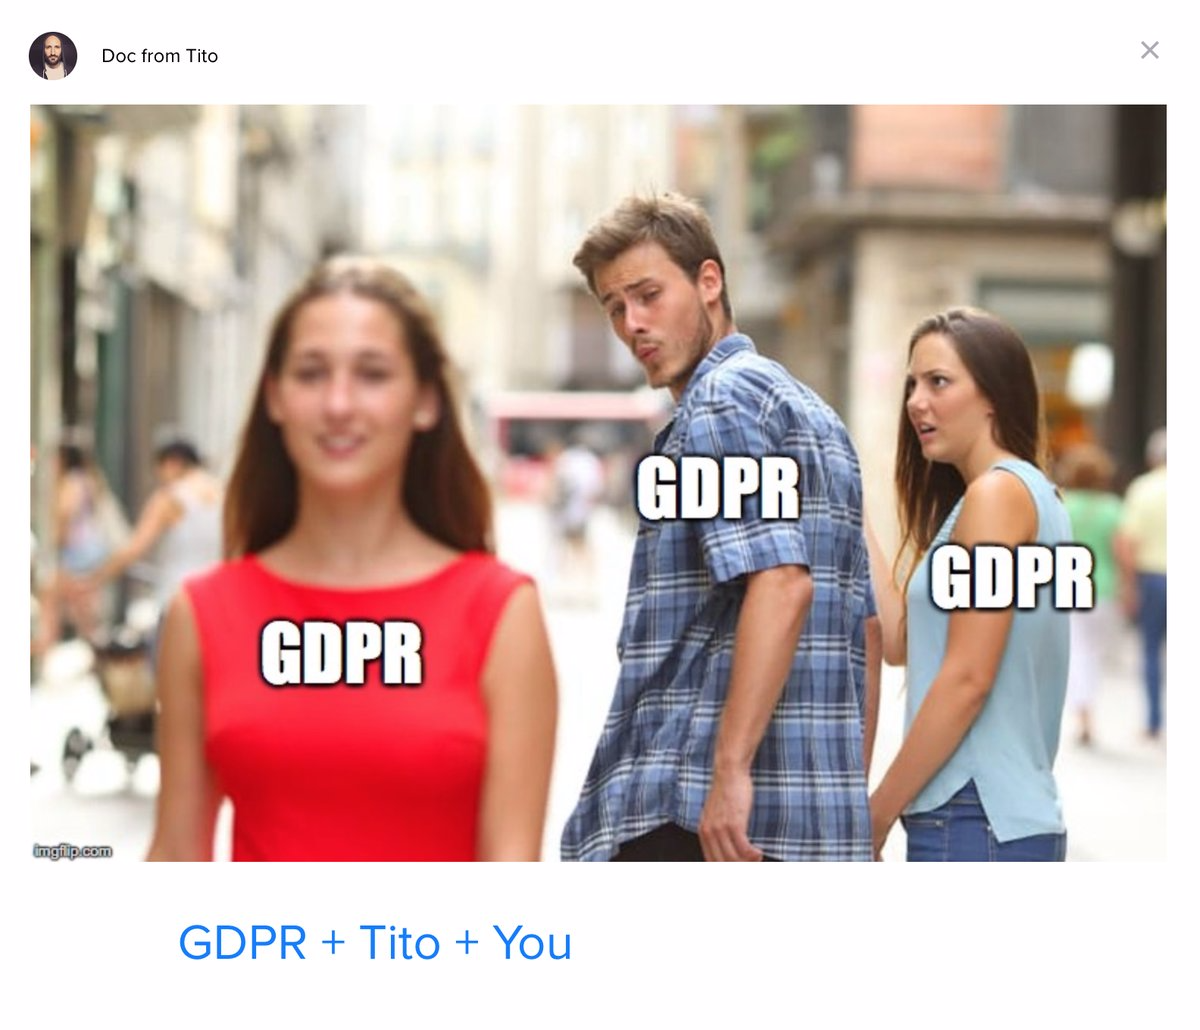 gdpr meme tito intercom